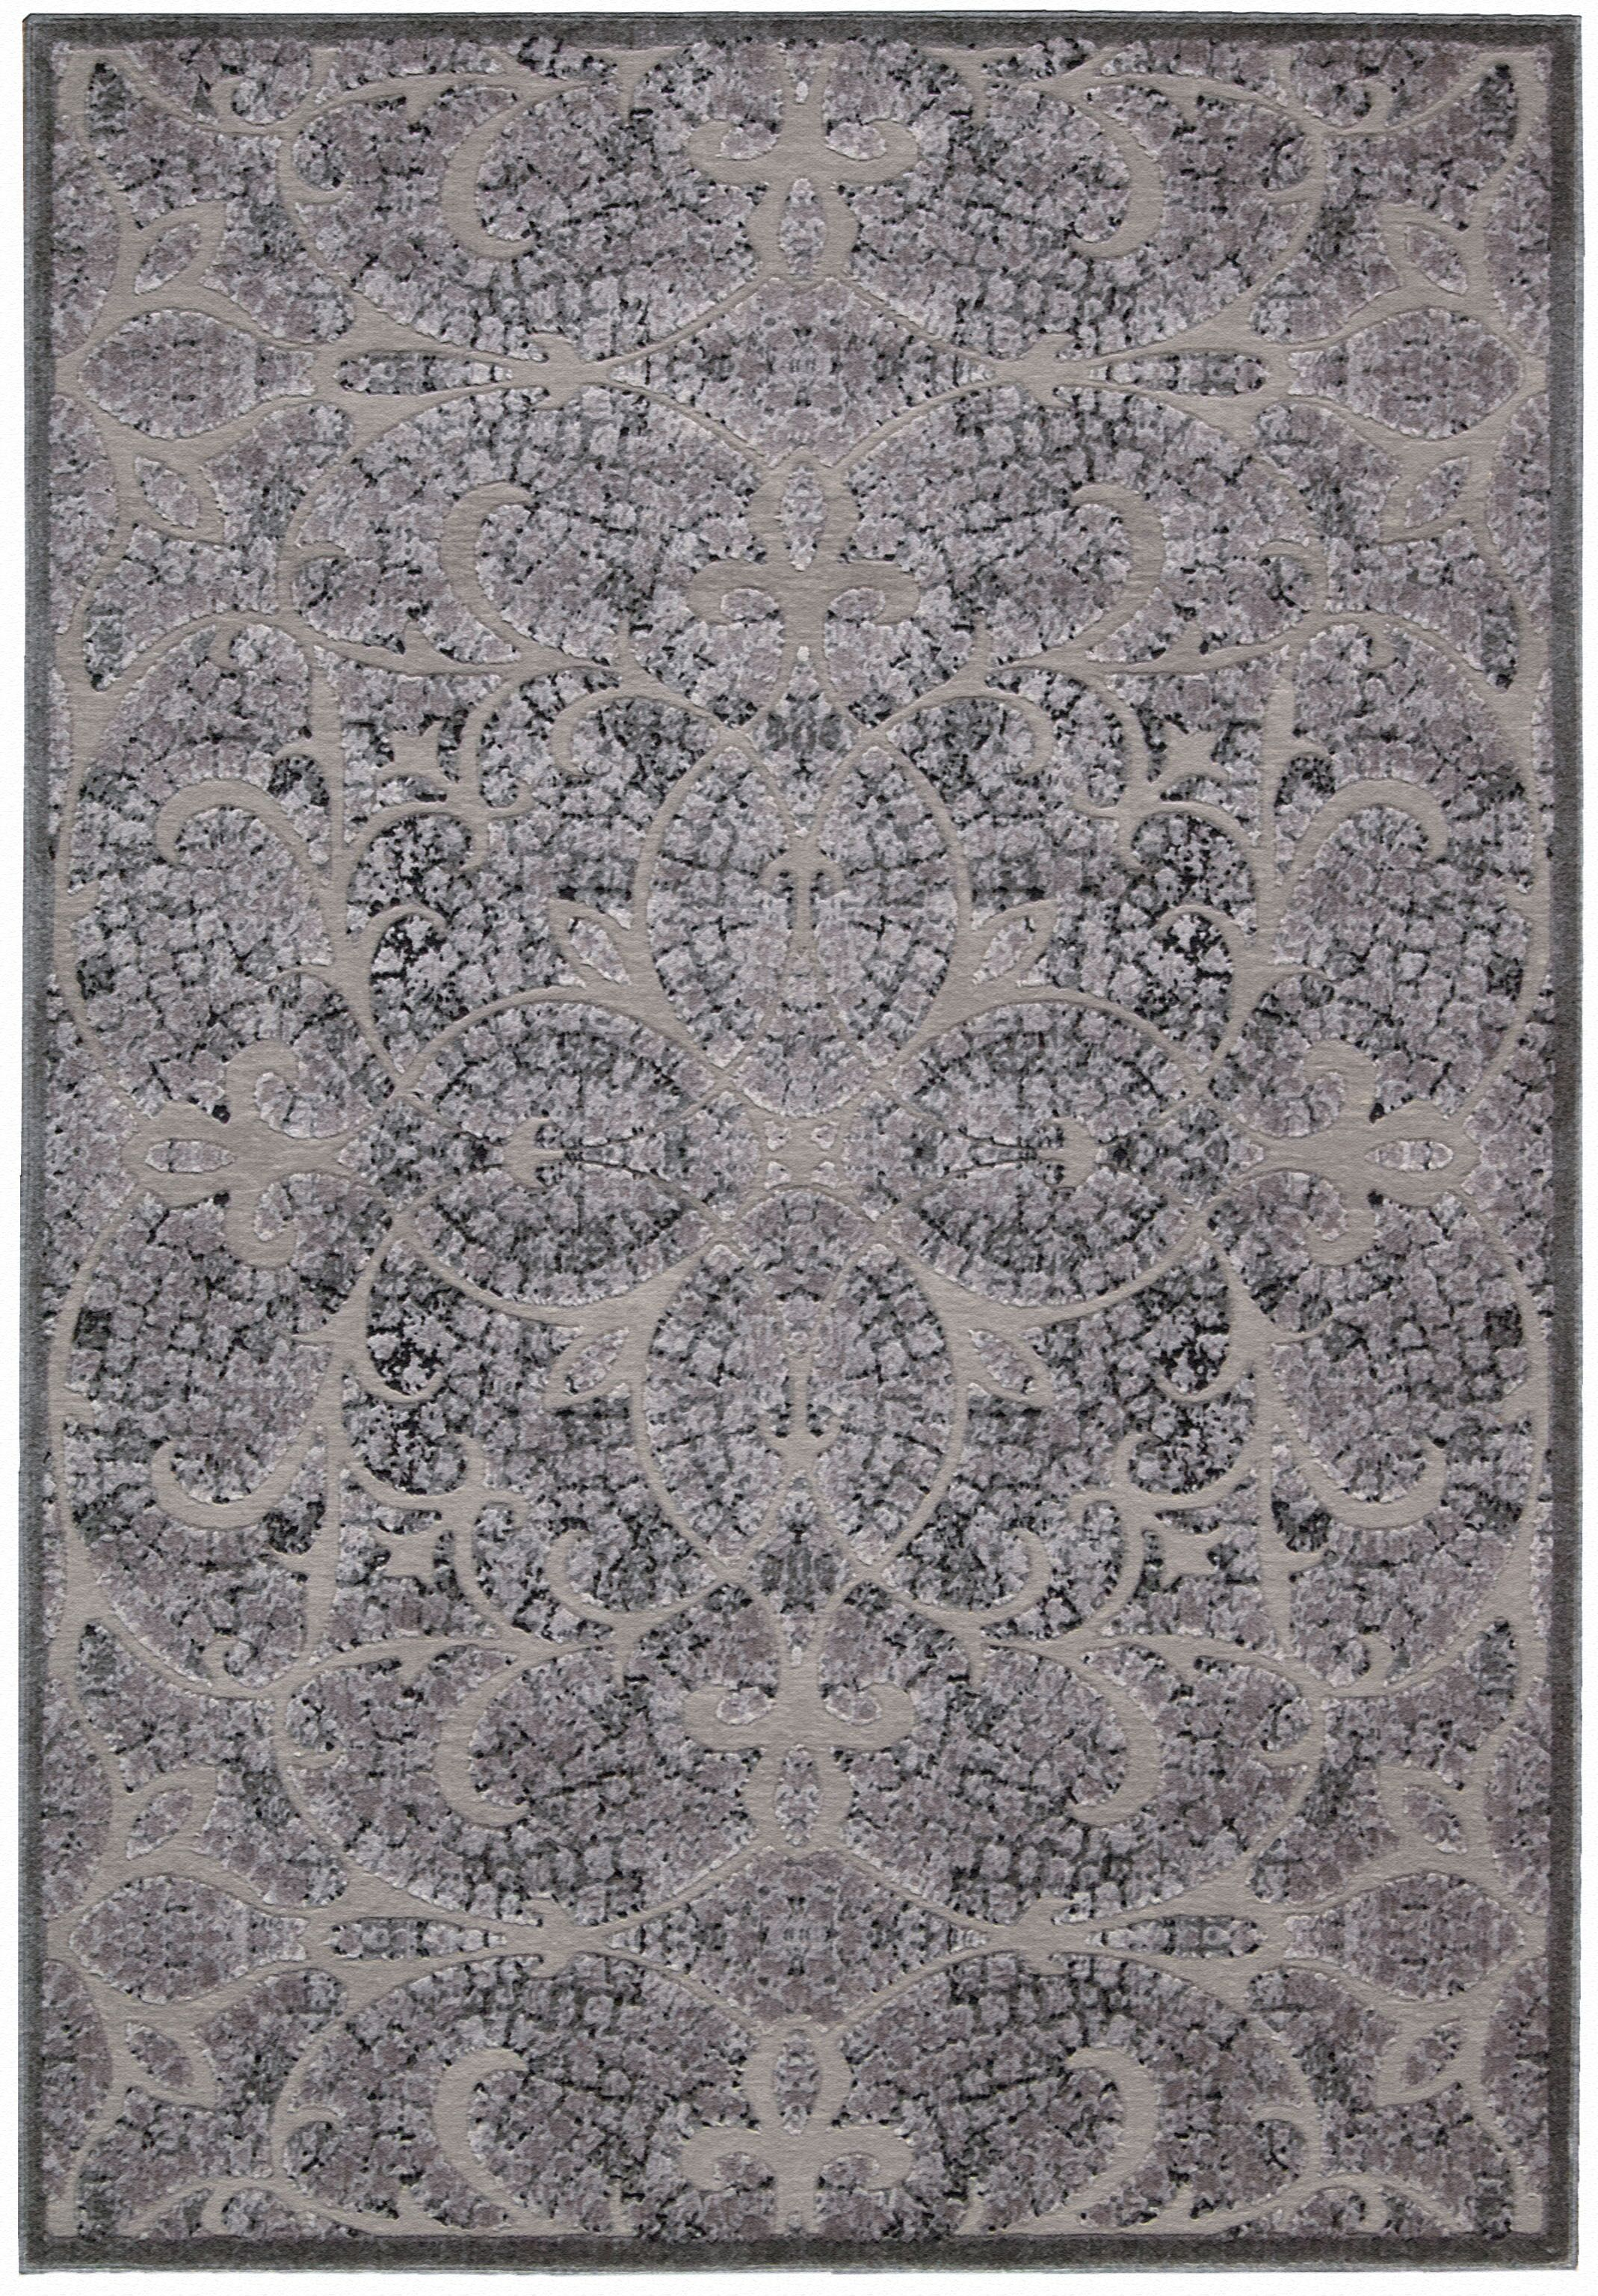 Driftwood Gray Area Rug Rug Size: Rectangle 3'6